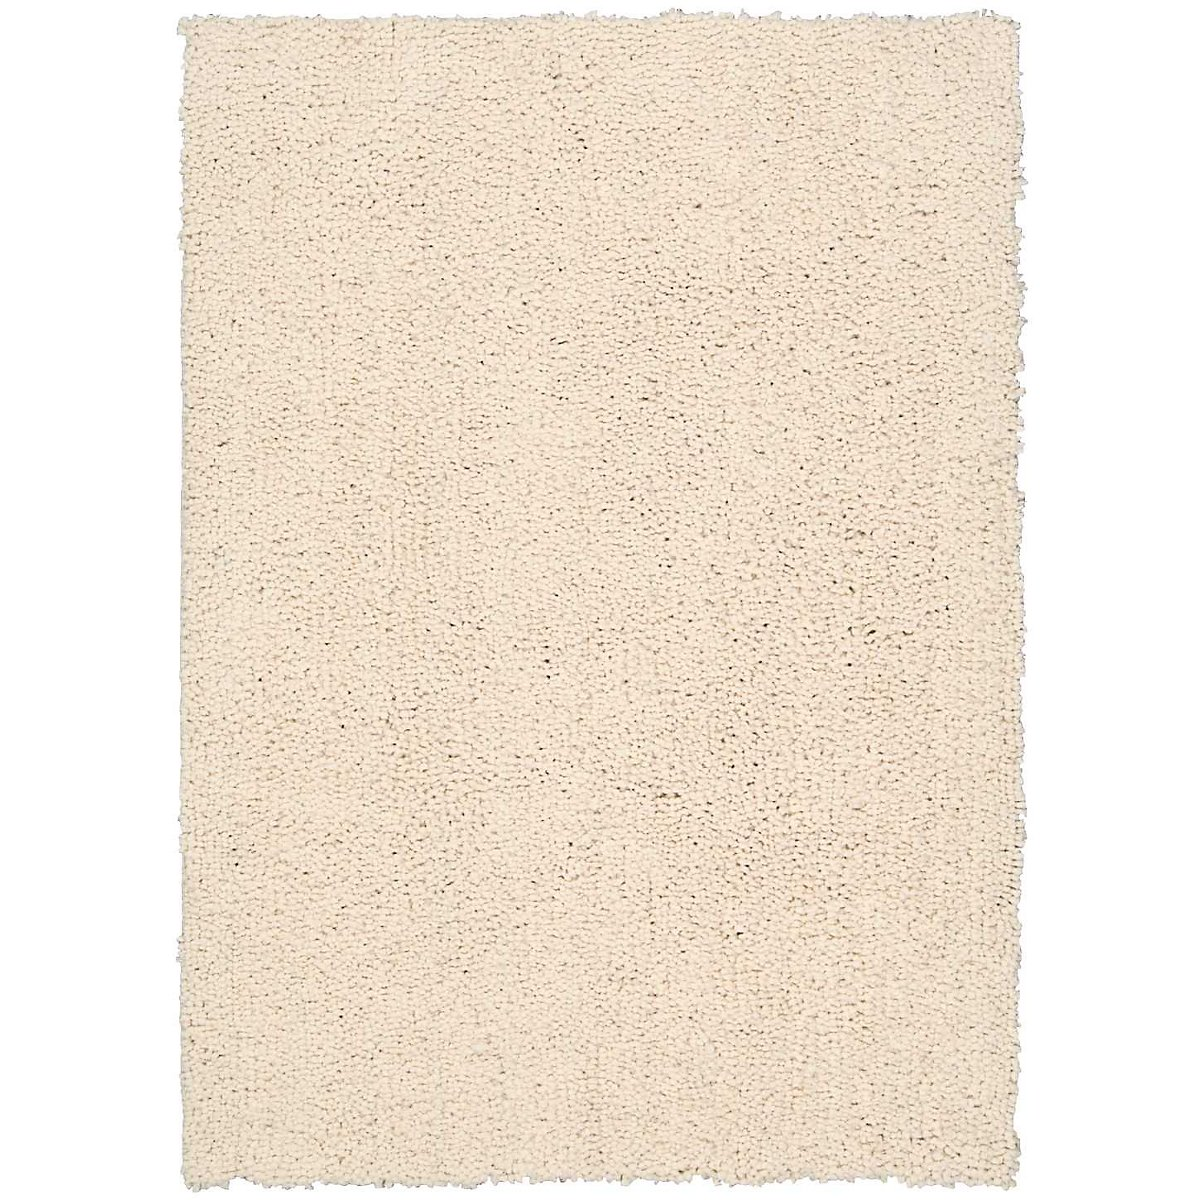 Puli Light Beige 5X7 Area Rug